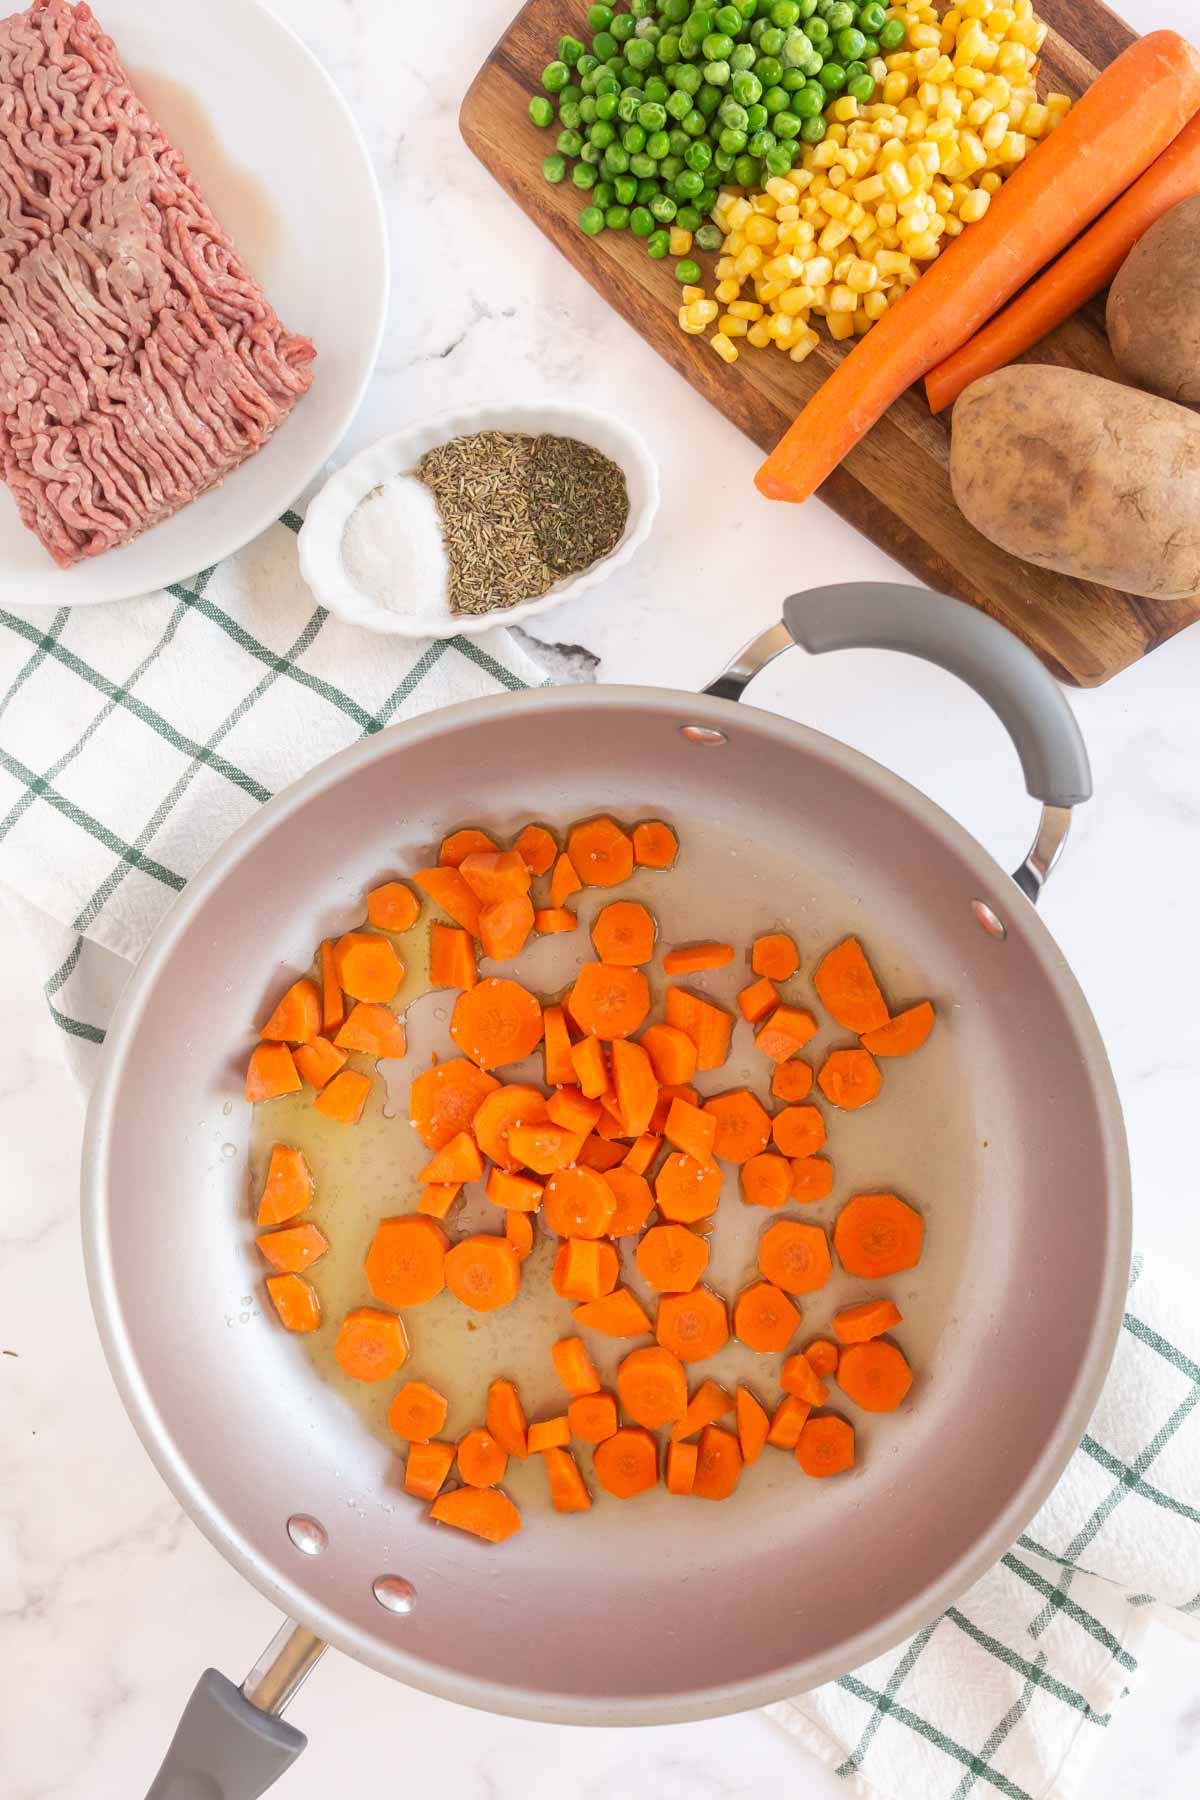 Metal pan with carrots cooking inside